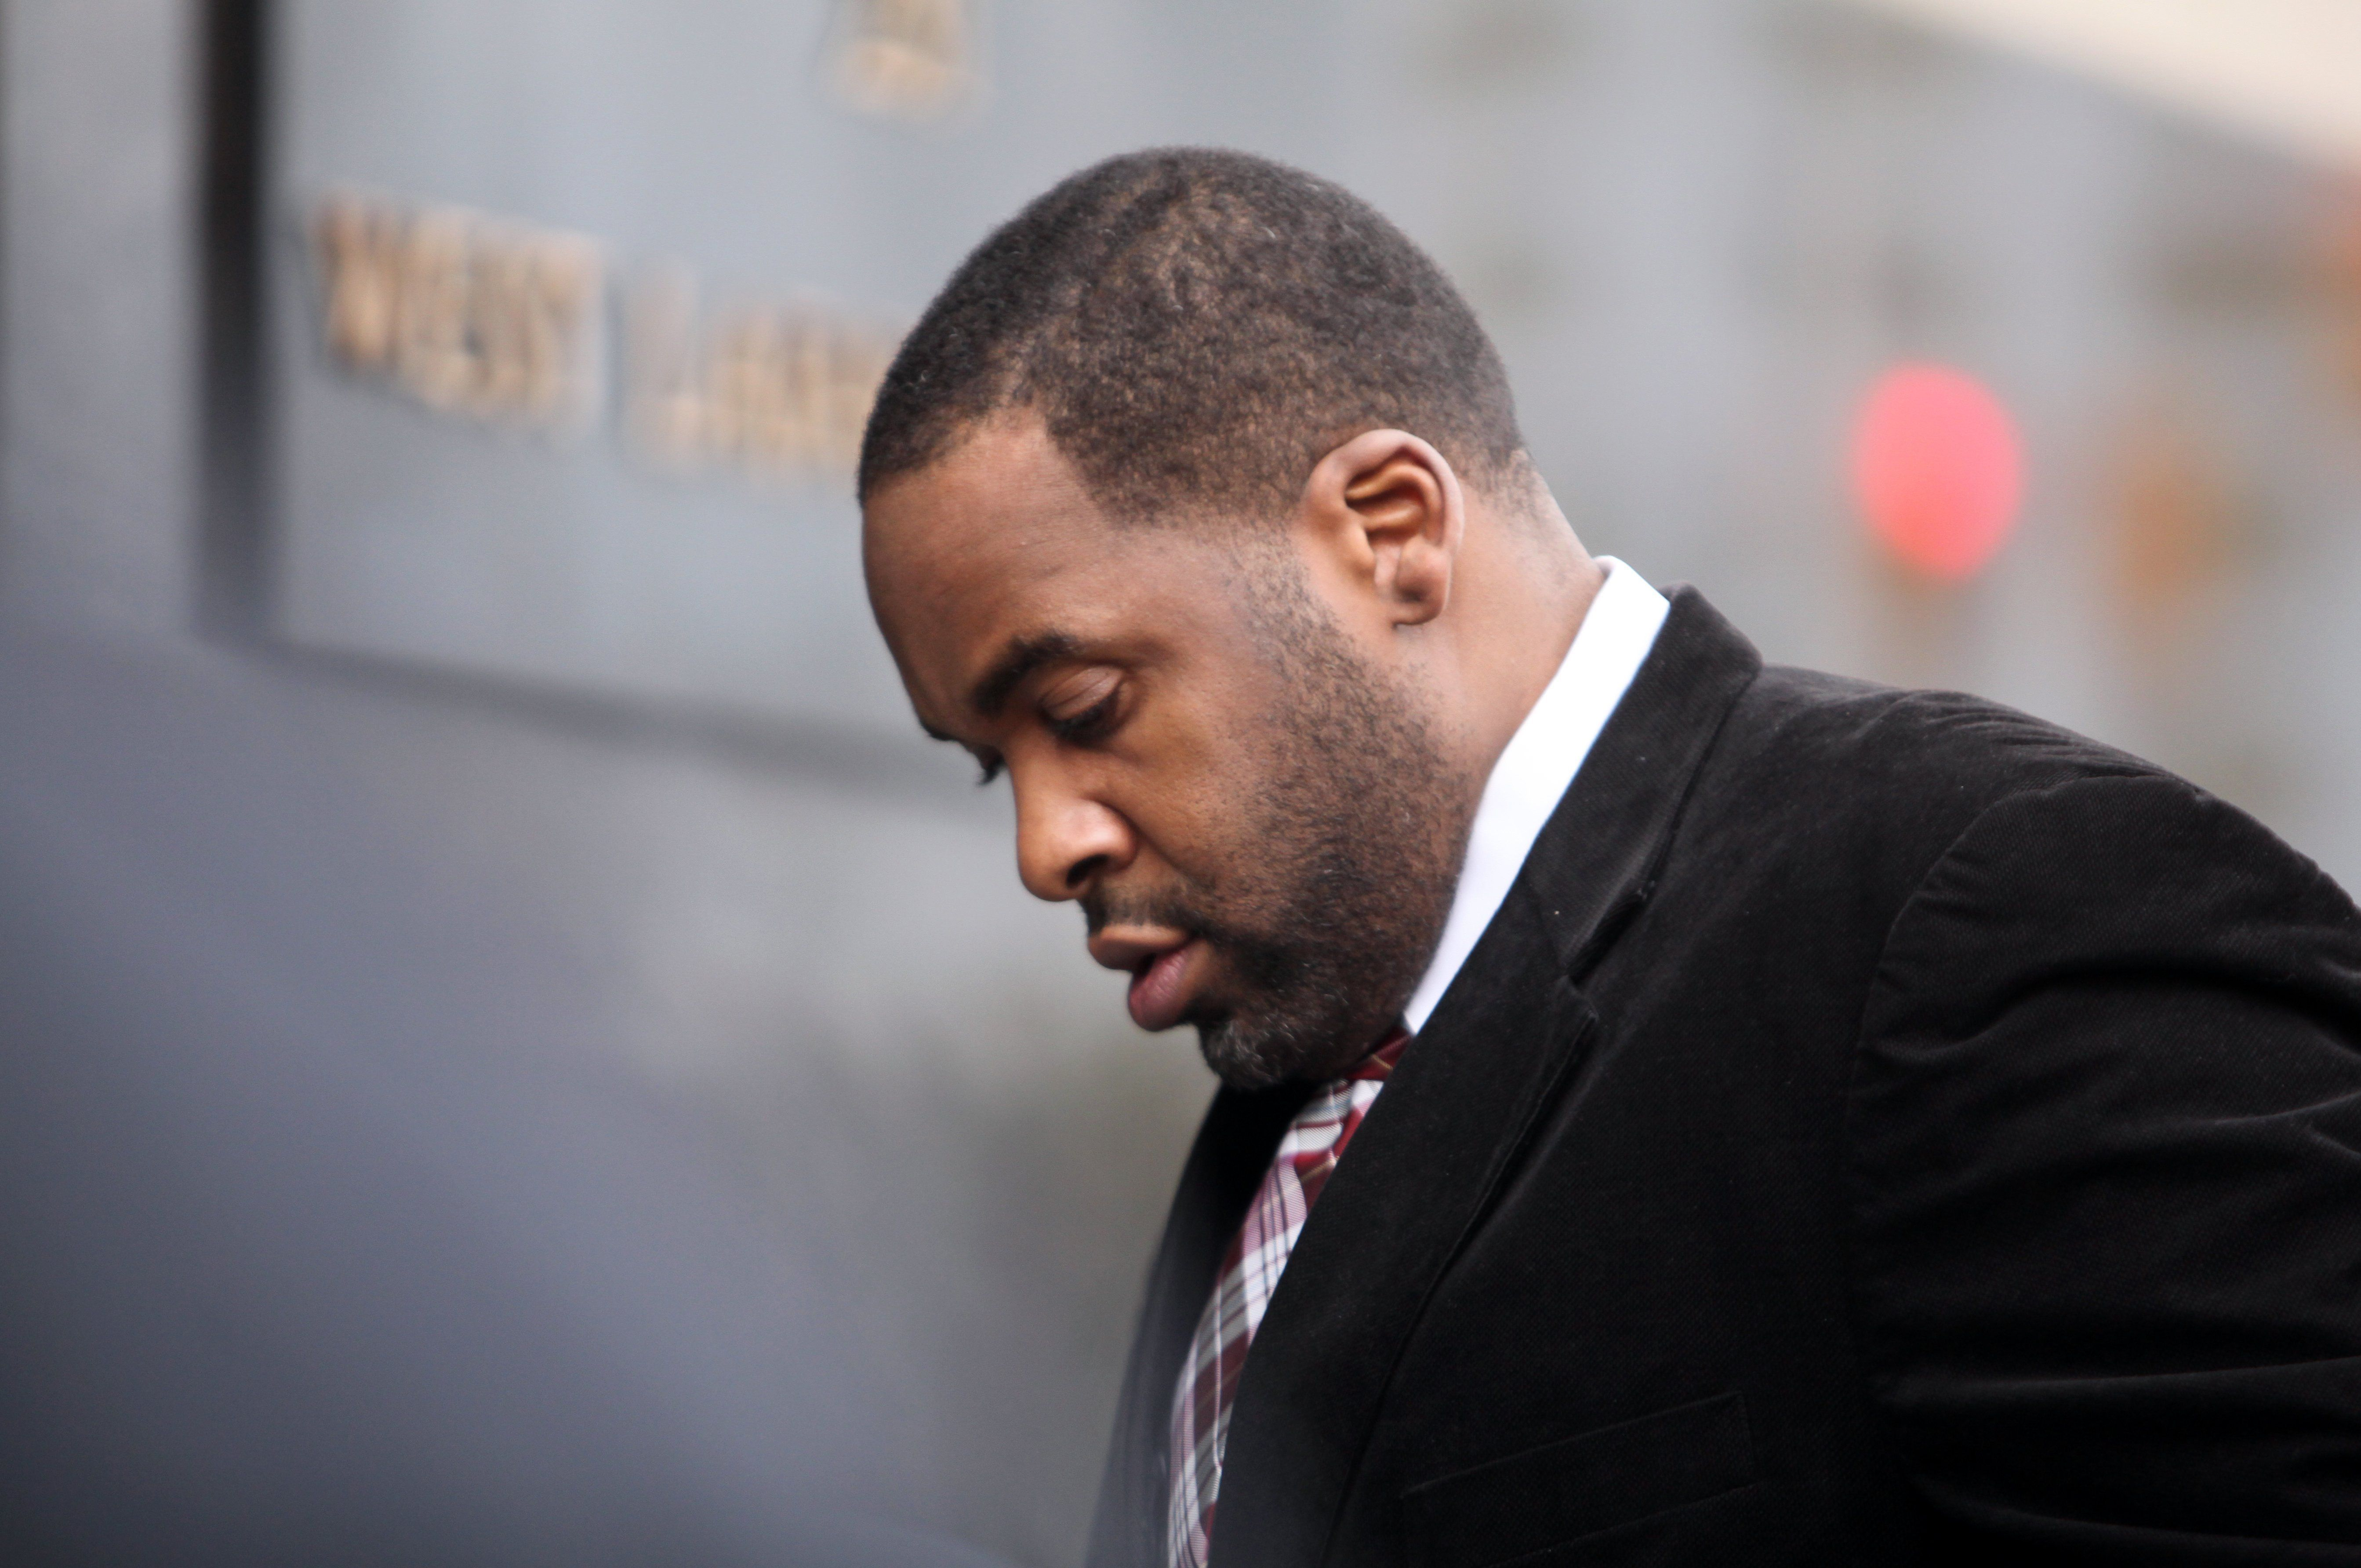 Former Detroit mayor Kwame Kilpatrick makes his way in to federal court in Detroit on Monday, March 11, 2013. The jury has reached a verdict in the public corruption trial.